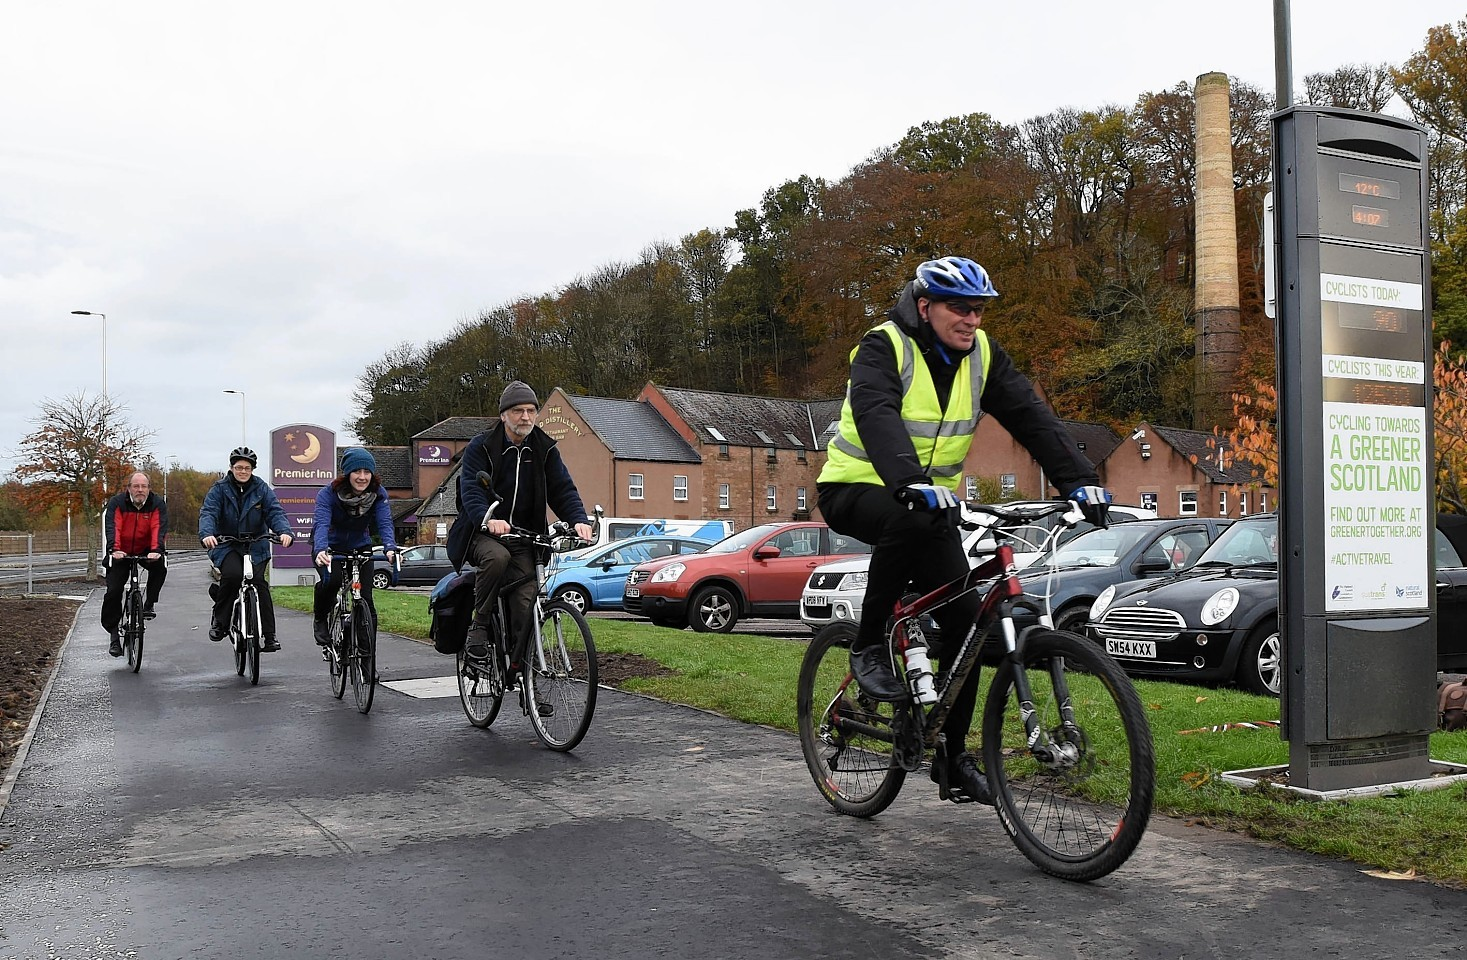 Cyclists on the Millburn Road cycle path